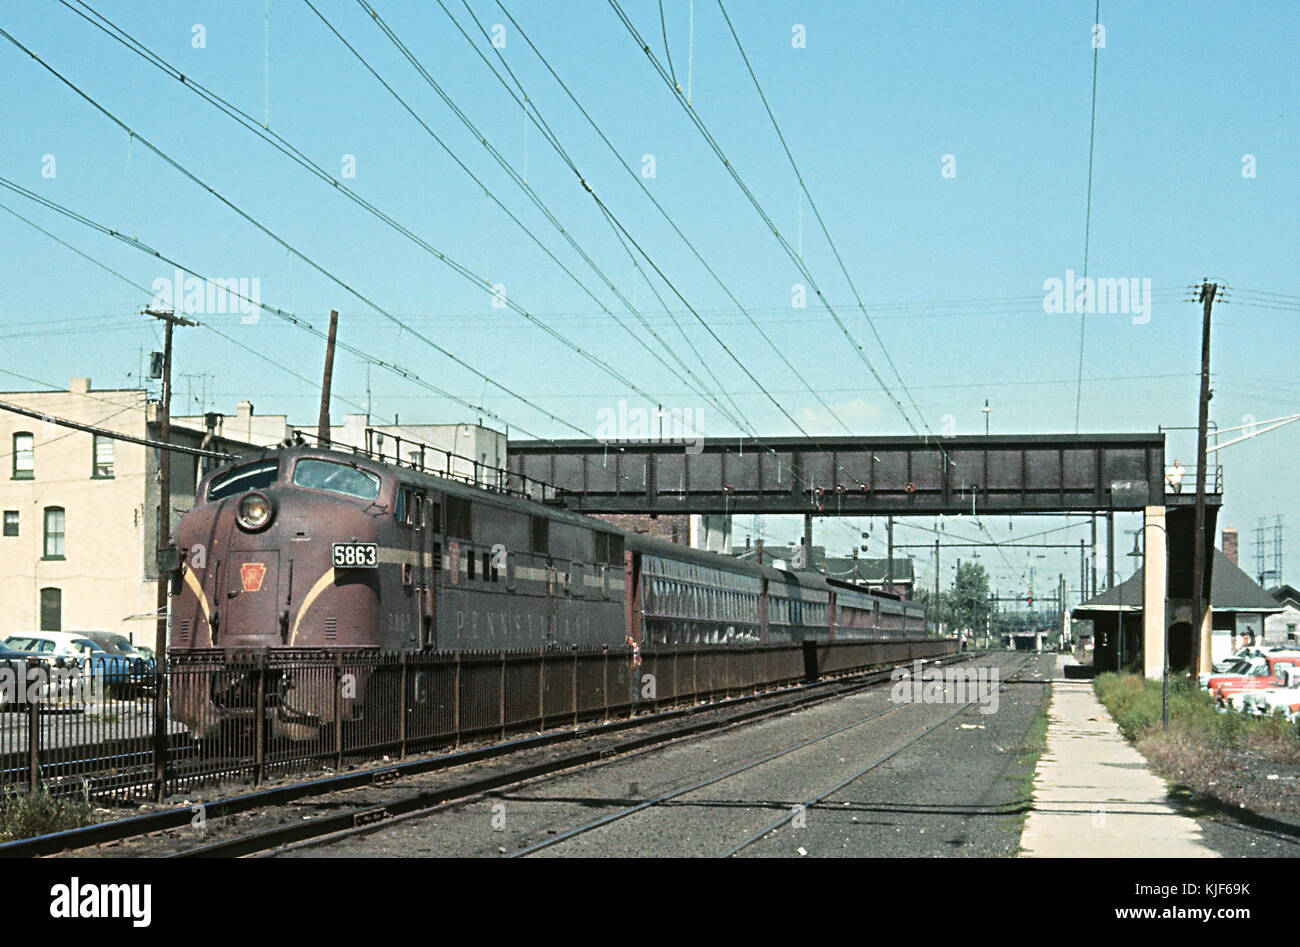 South Amboy Stock Photos & South Amboy Stock Images - Alamy